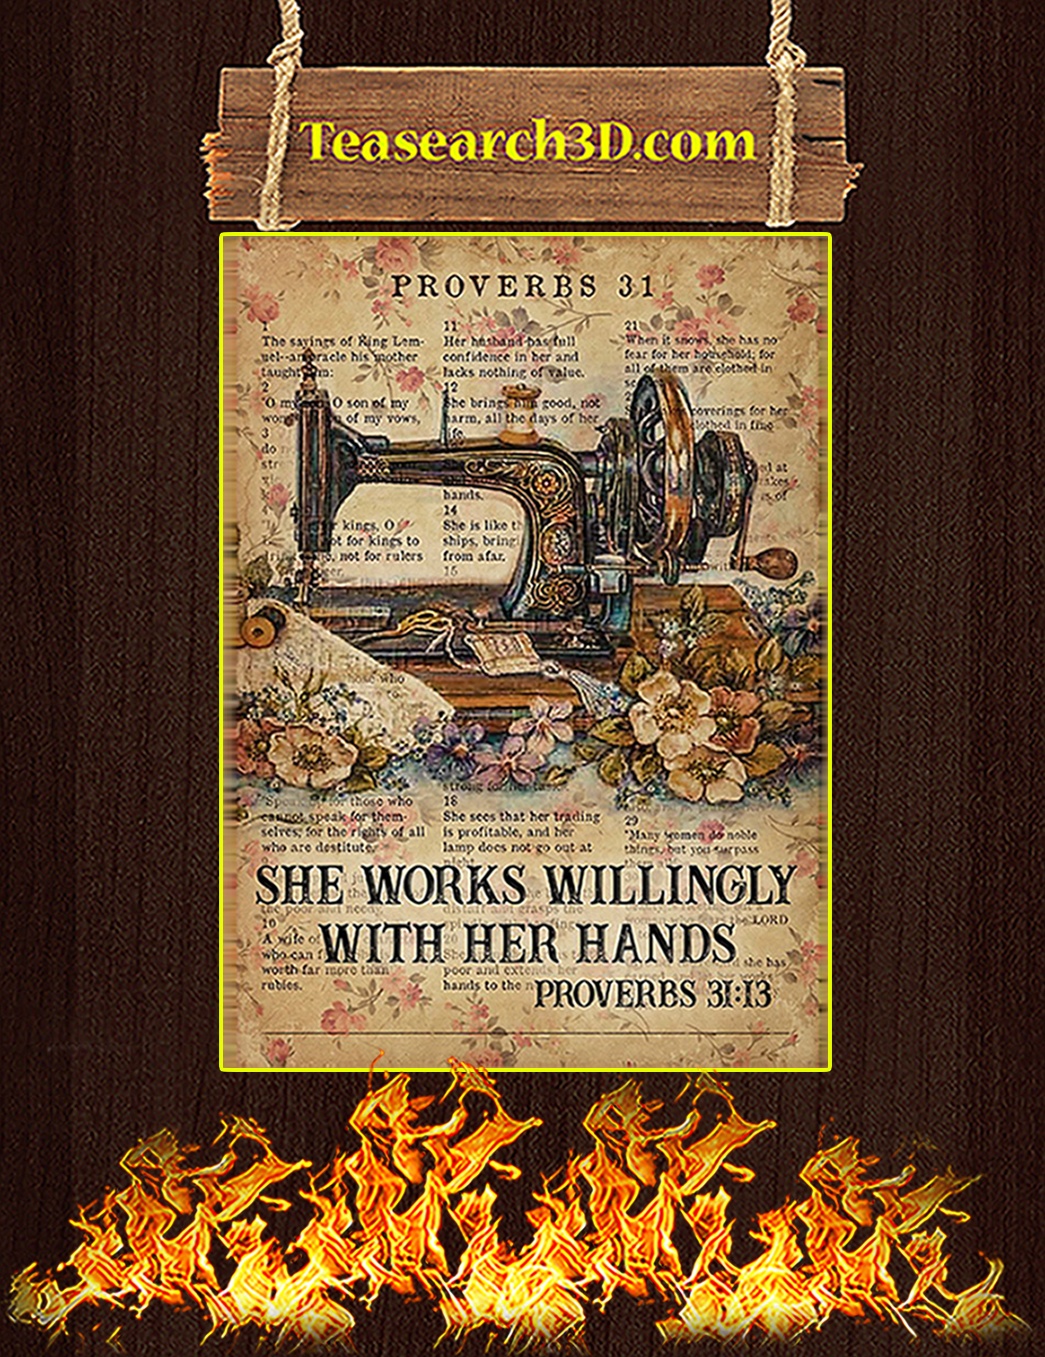 Sewing Proverbs 31 she works willingly with her hands poster A1